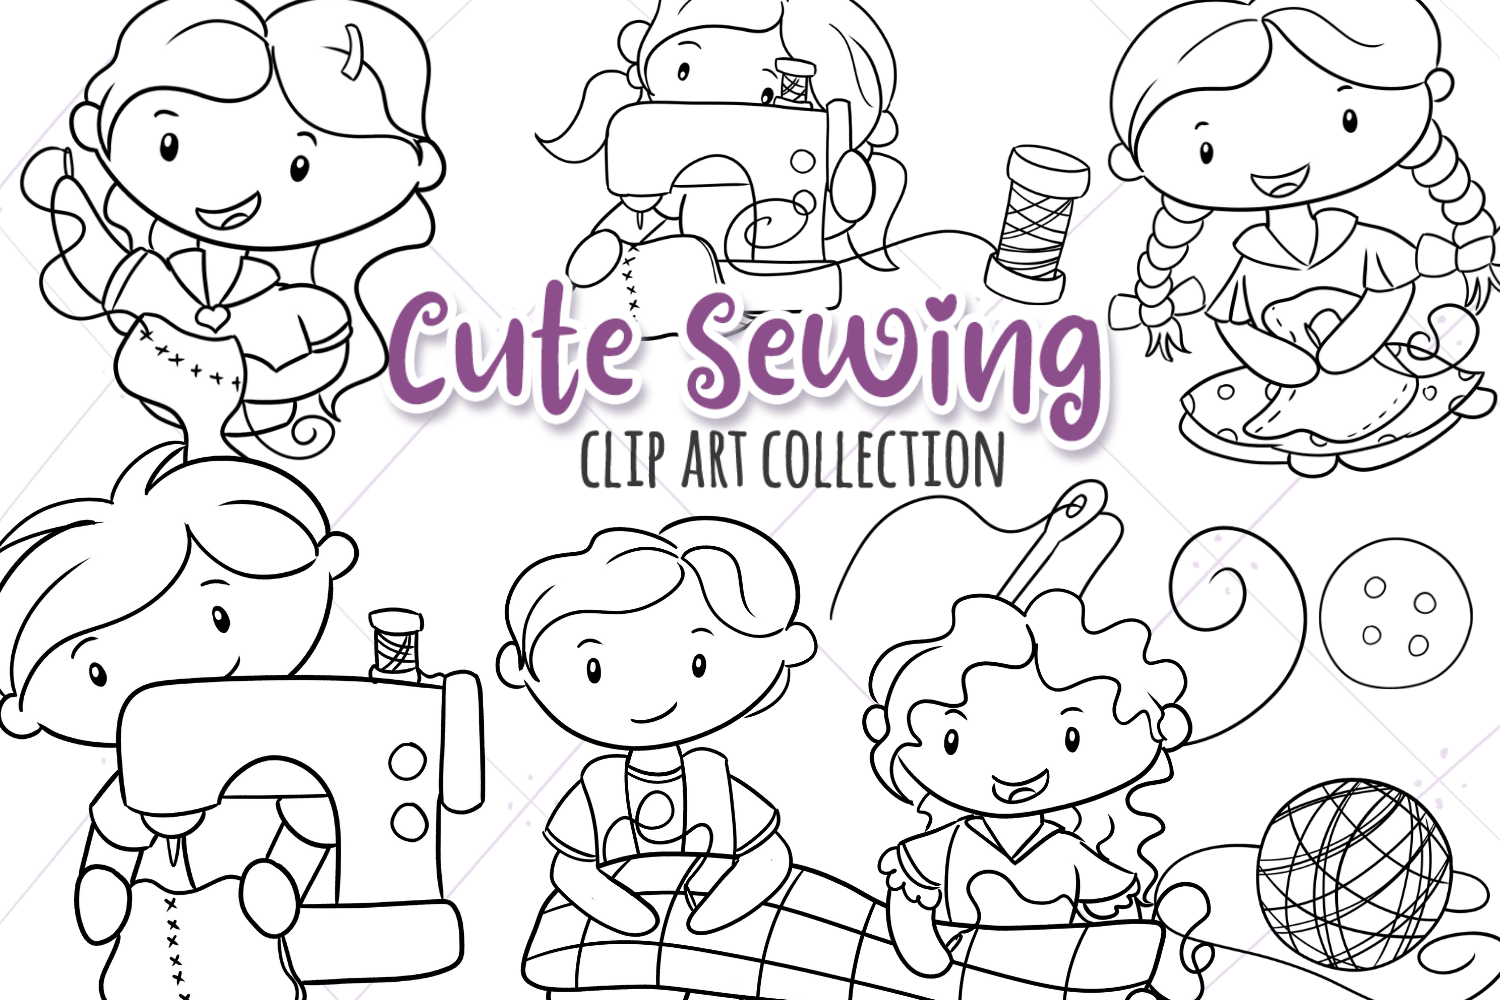 Download Free Cute Sewing Black And White Graphic By Keepinitkawaiidesign for Cricut Explore, Silhouette and other cutting machines.